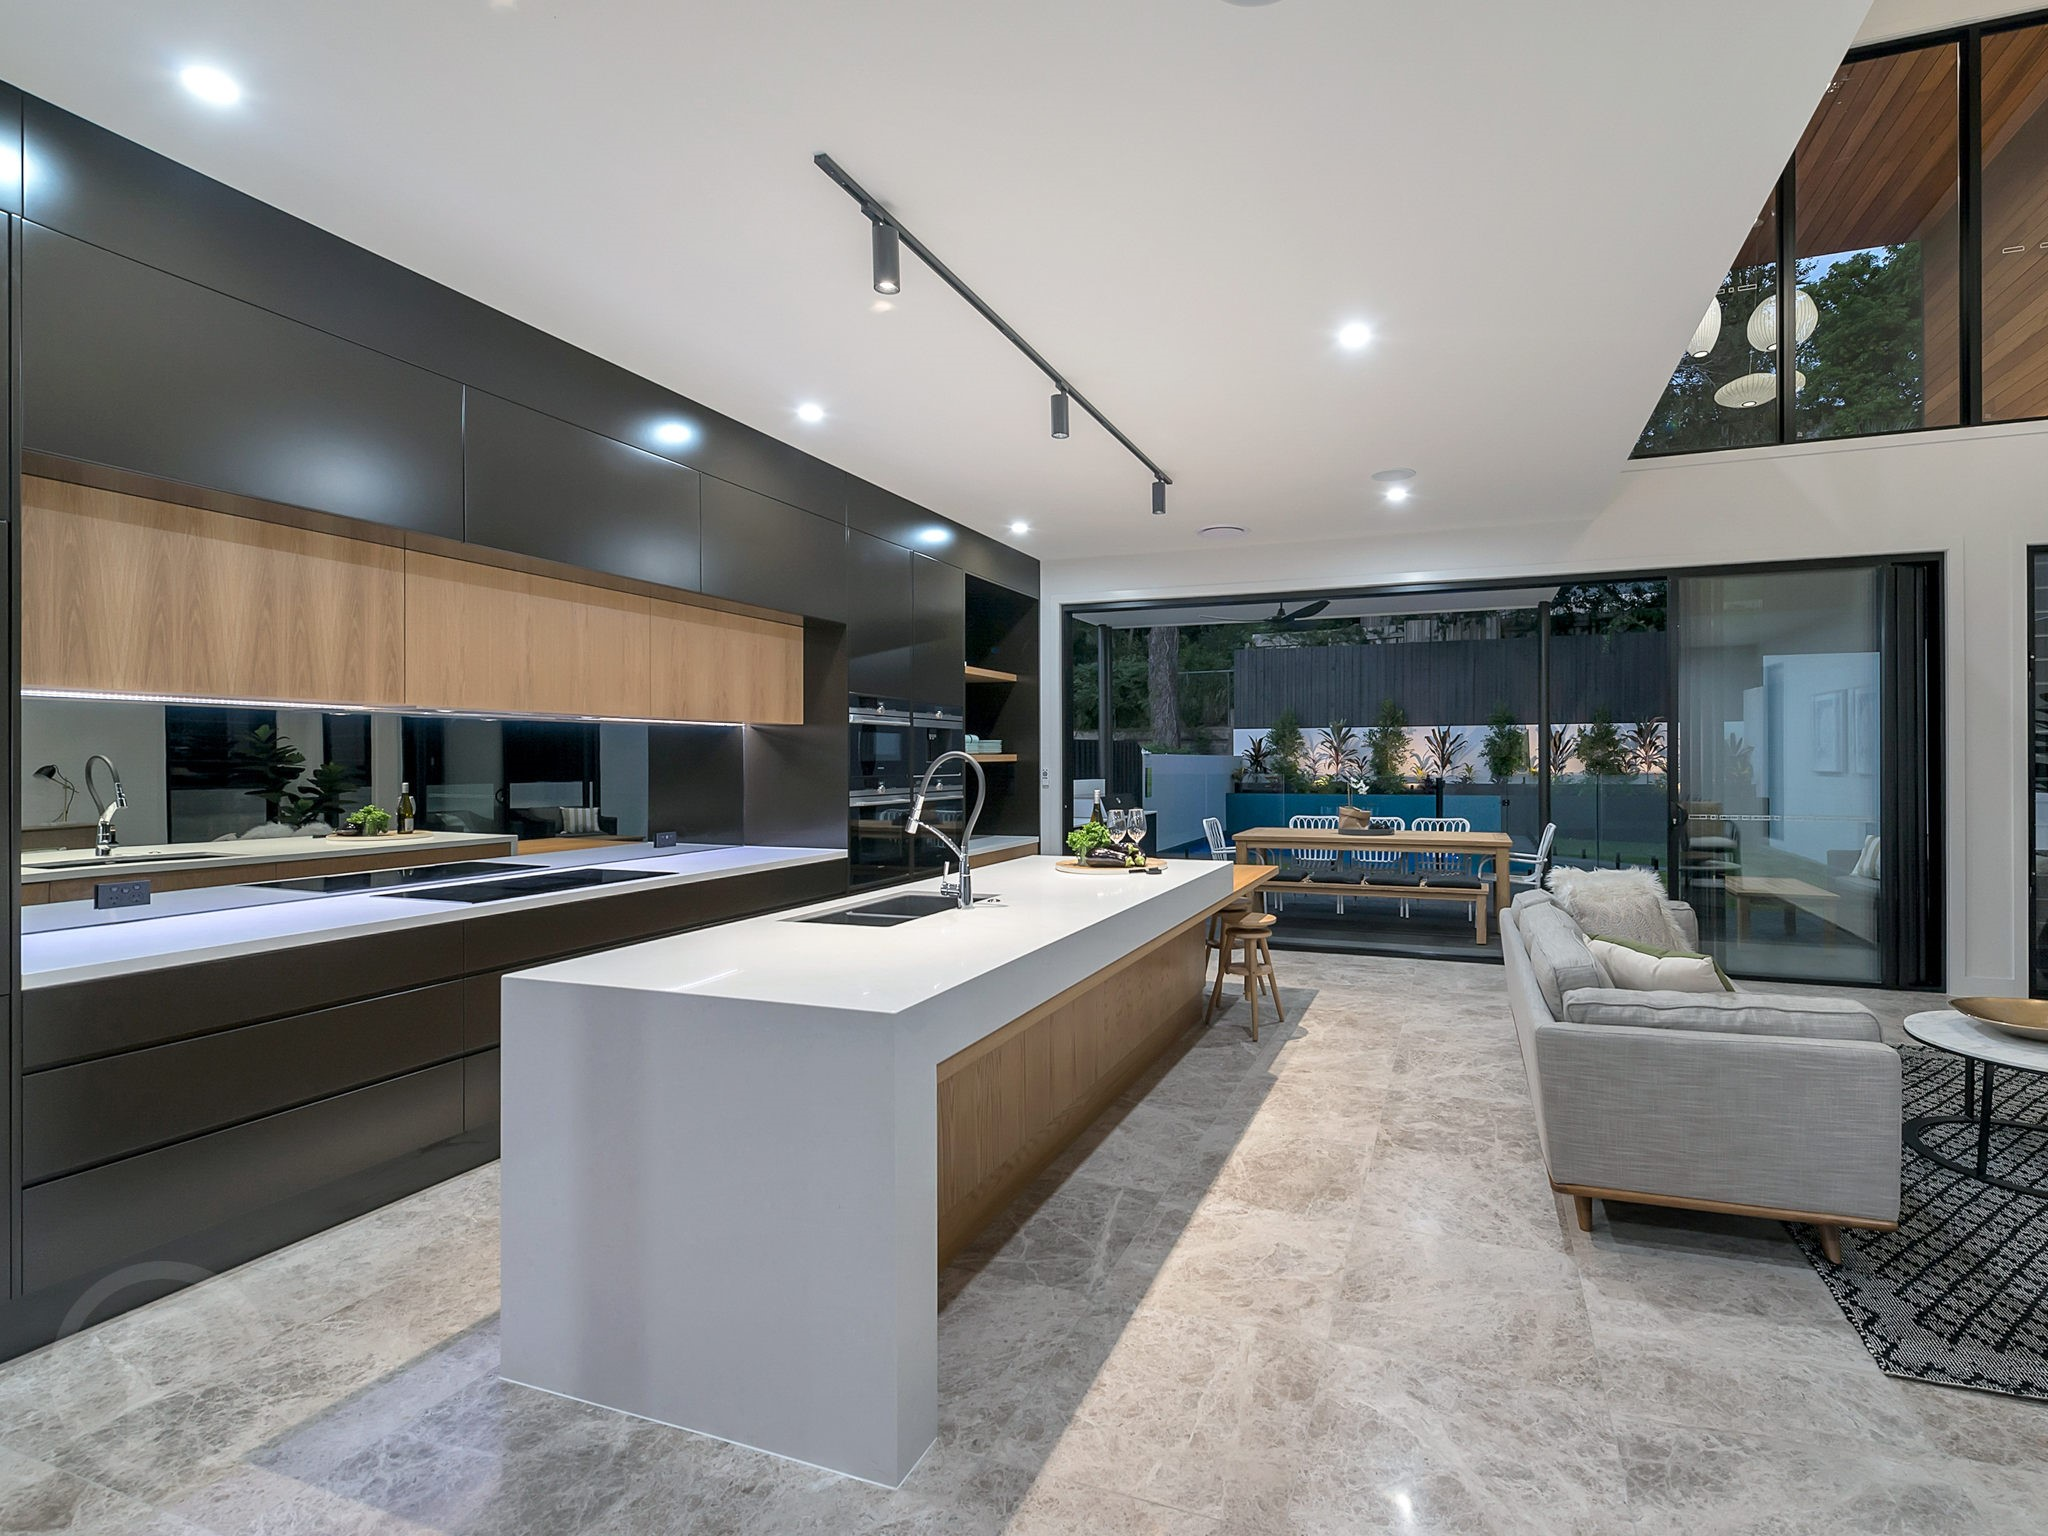 kitchen designer jobs brisbane kitchen designs brisbane southside gold coast australia 806